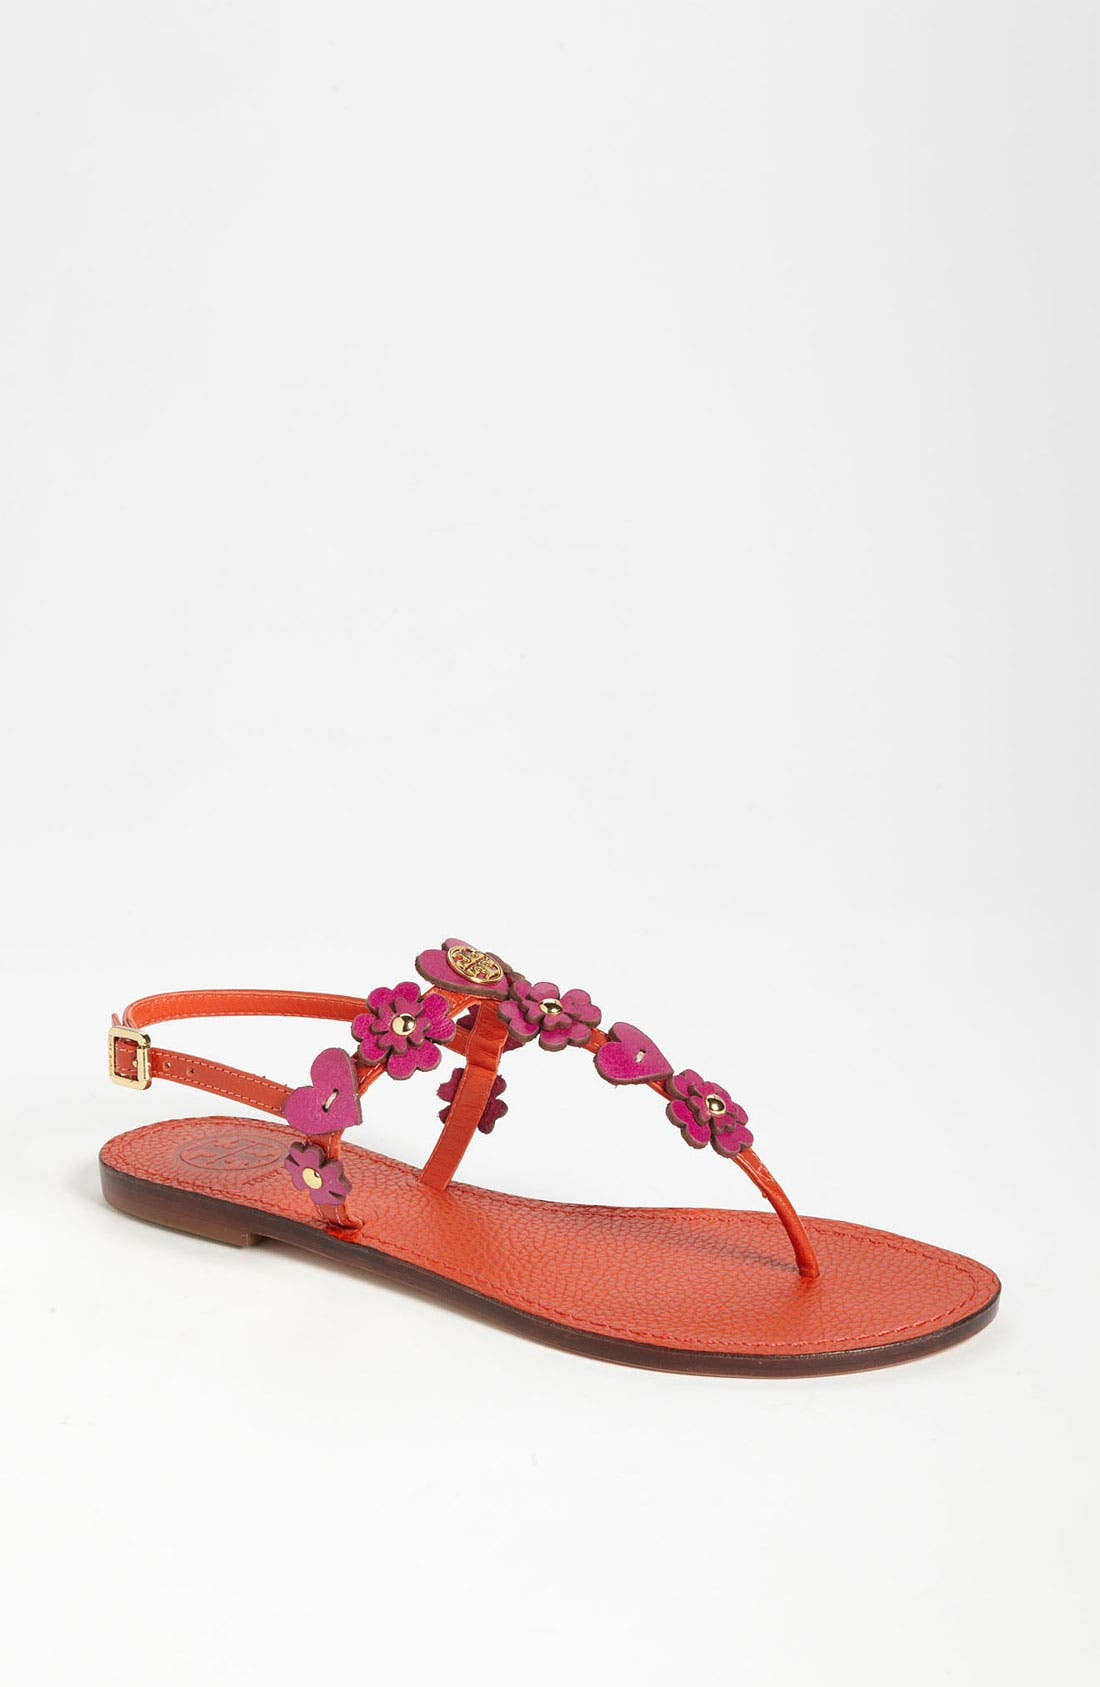 'Cori' Thong Sandal,                         Main,                         color, Flame Red Party Fuchsia